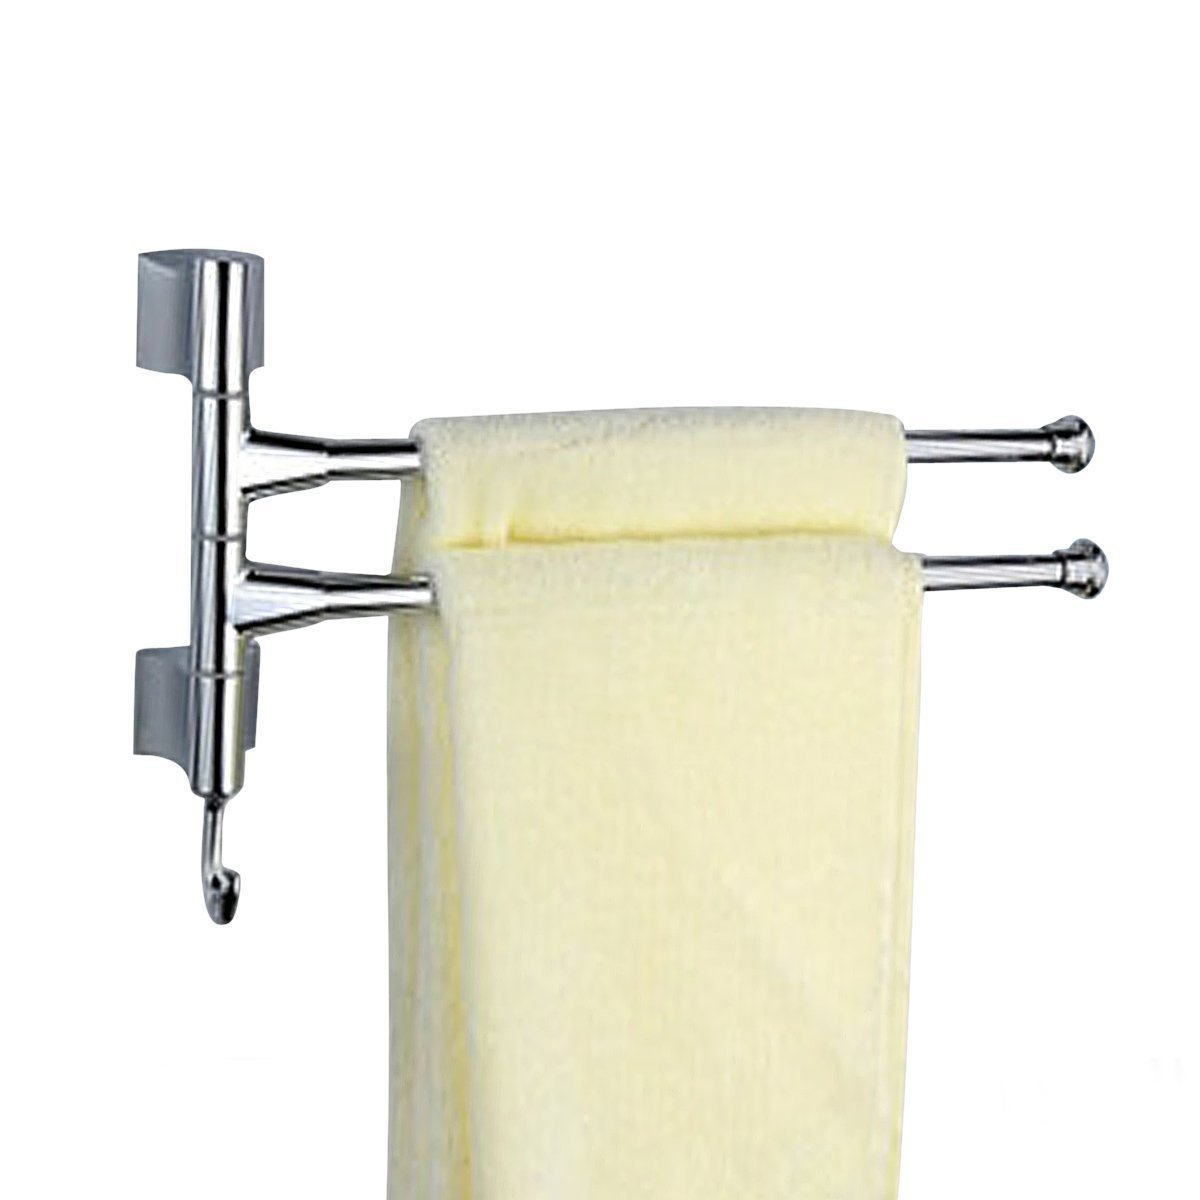 Agile-Shop Wall-Mounted Bathroom Kitchen Towel Rack Holder - 2 Swing Arms, Polished Stainless Steel